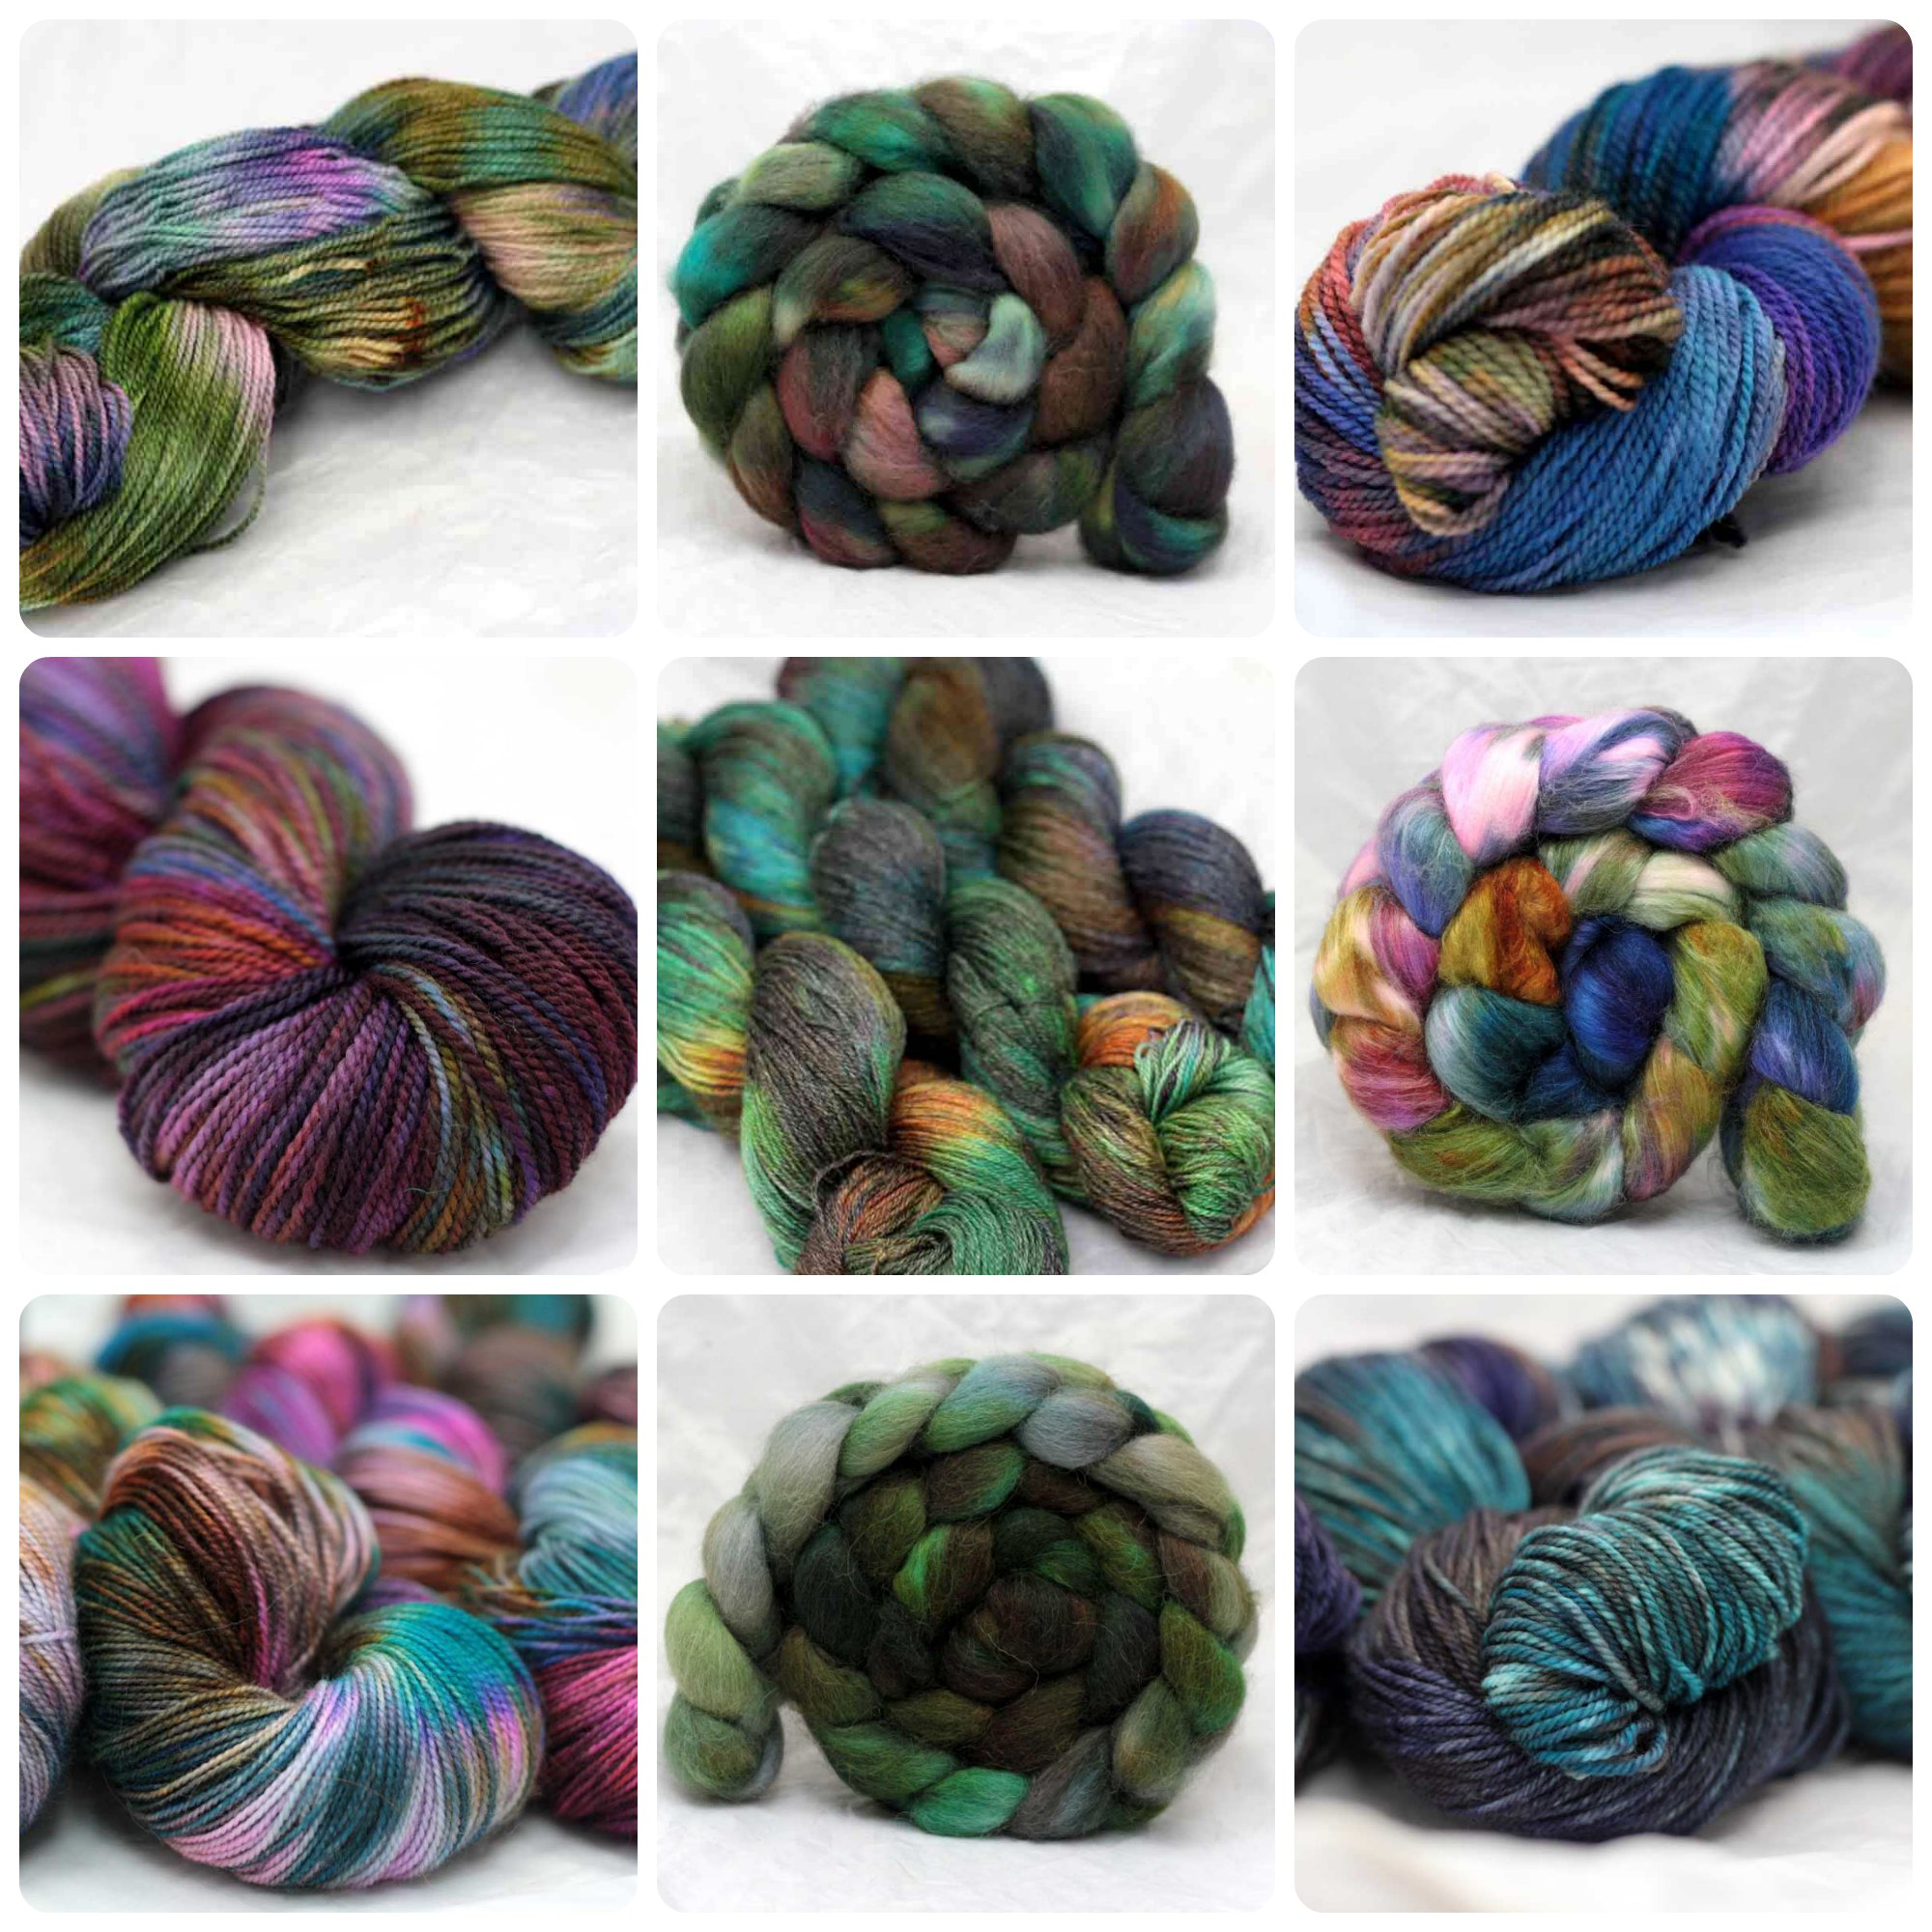 Hand Spun Art Yarn for fiber artist